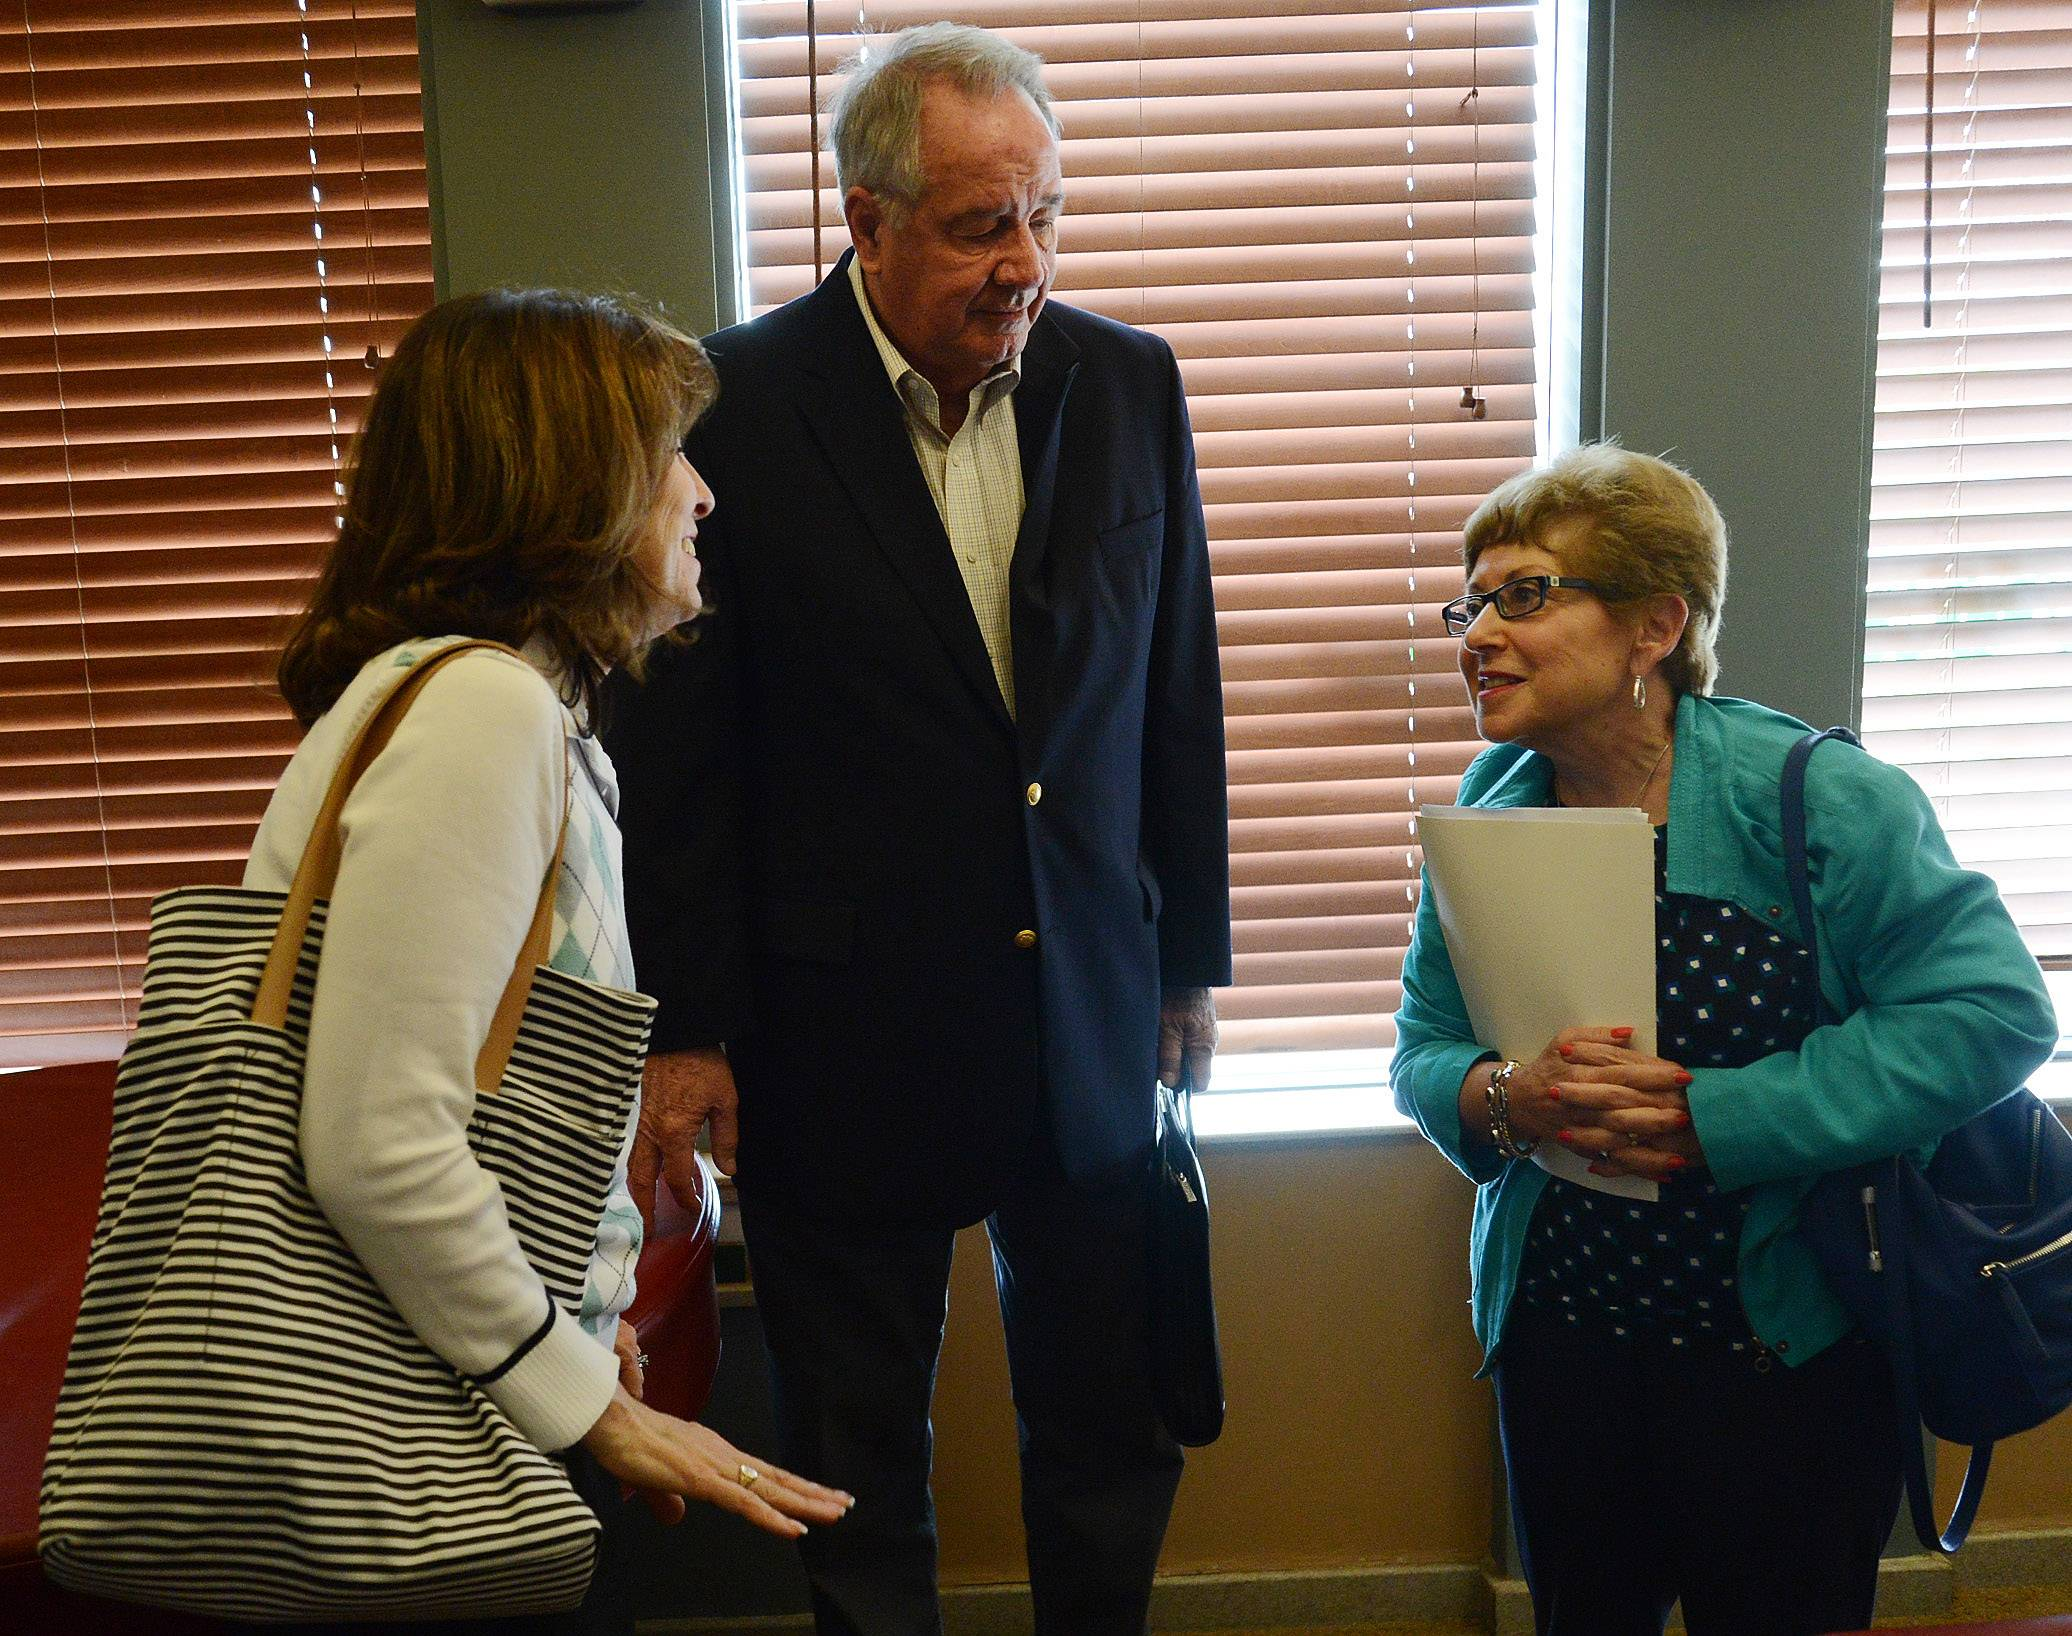 From left, Kathy Villano of Elk Grove Village, Burt Jensen of Inverness, and Sheila Schwartz of Hoffman Estates chat Monday before the On The Table event in Schaumburg.